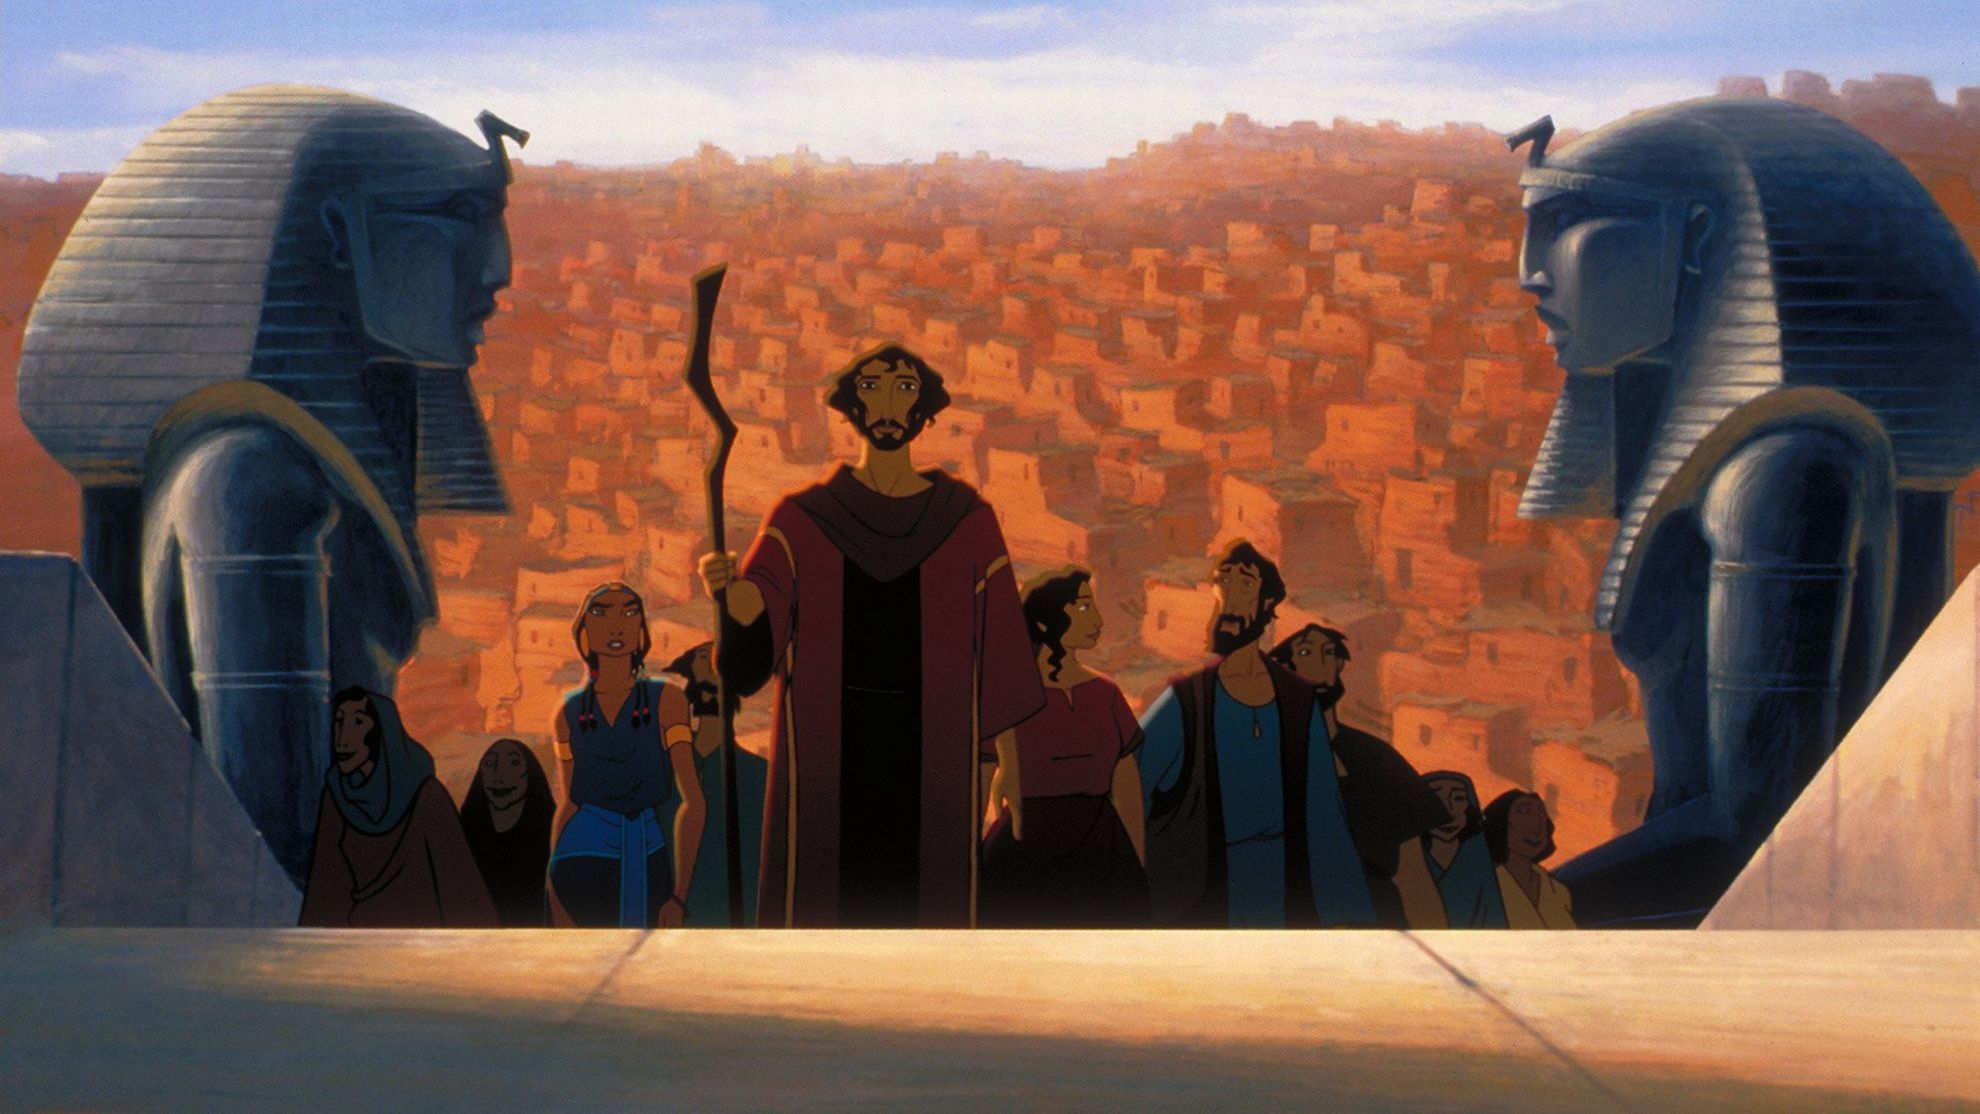 «The Prince of Egypt»                        (Foto: Dreamworks)